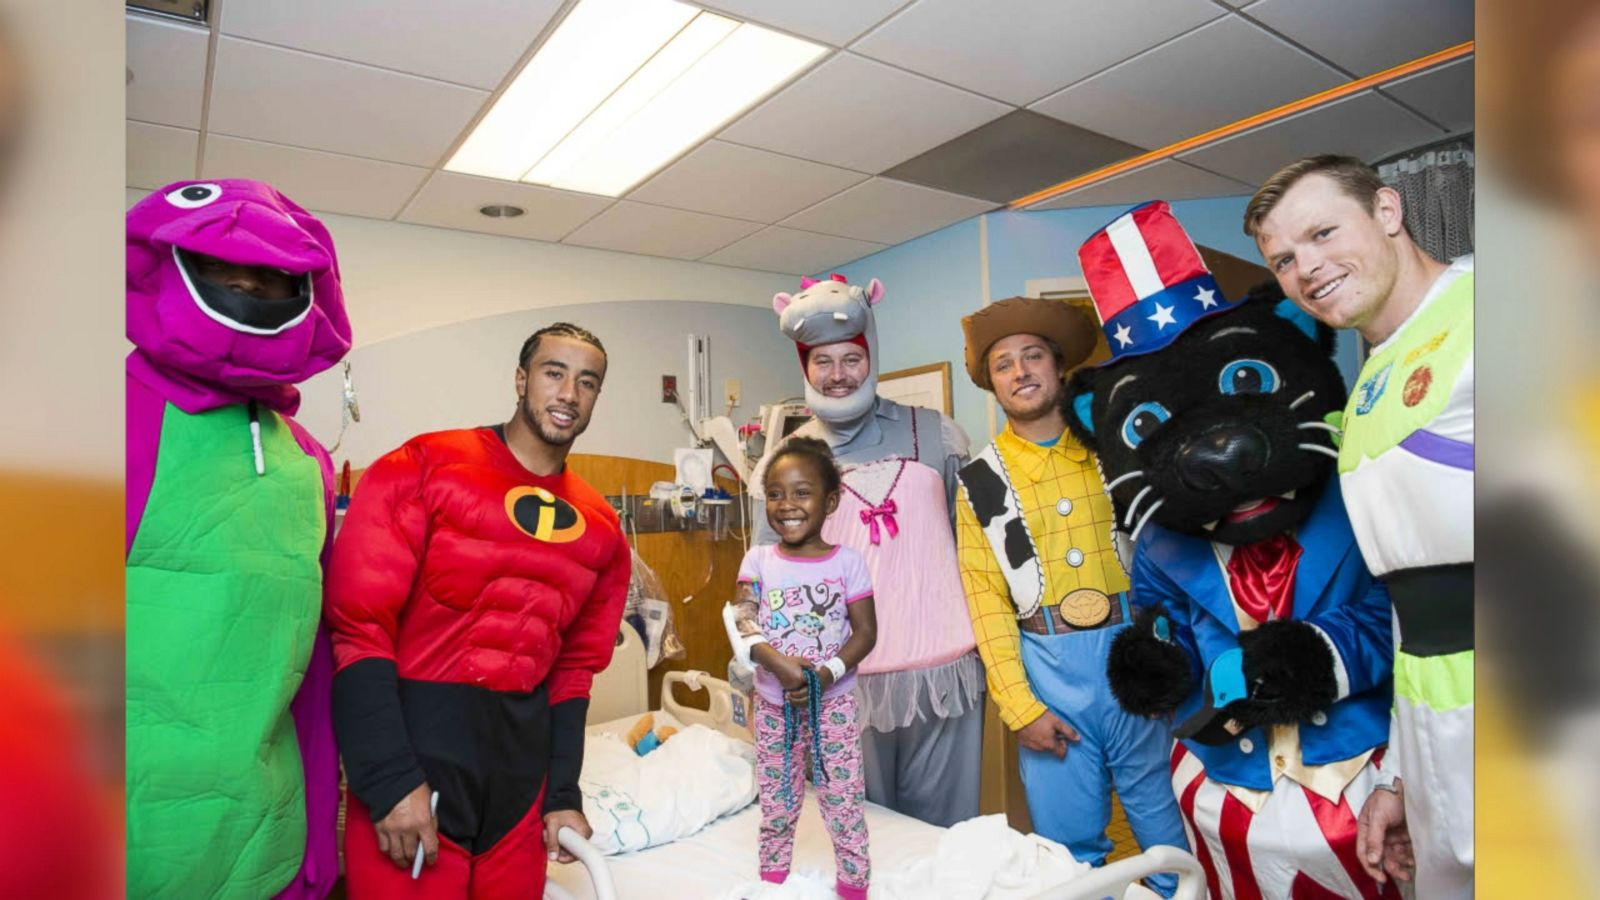 Rookies from the Carolina Panthers dressed as Captain America, Mr. Incredible and more.